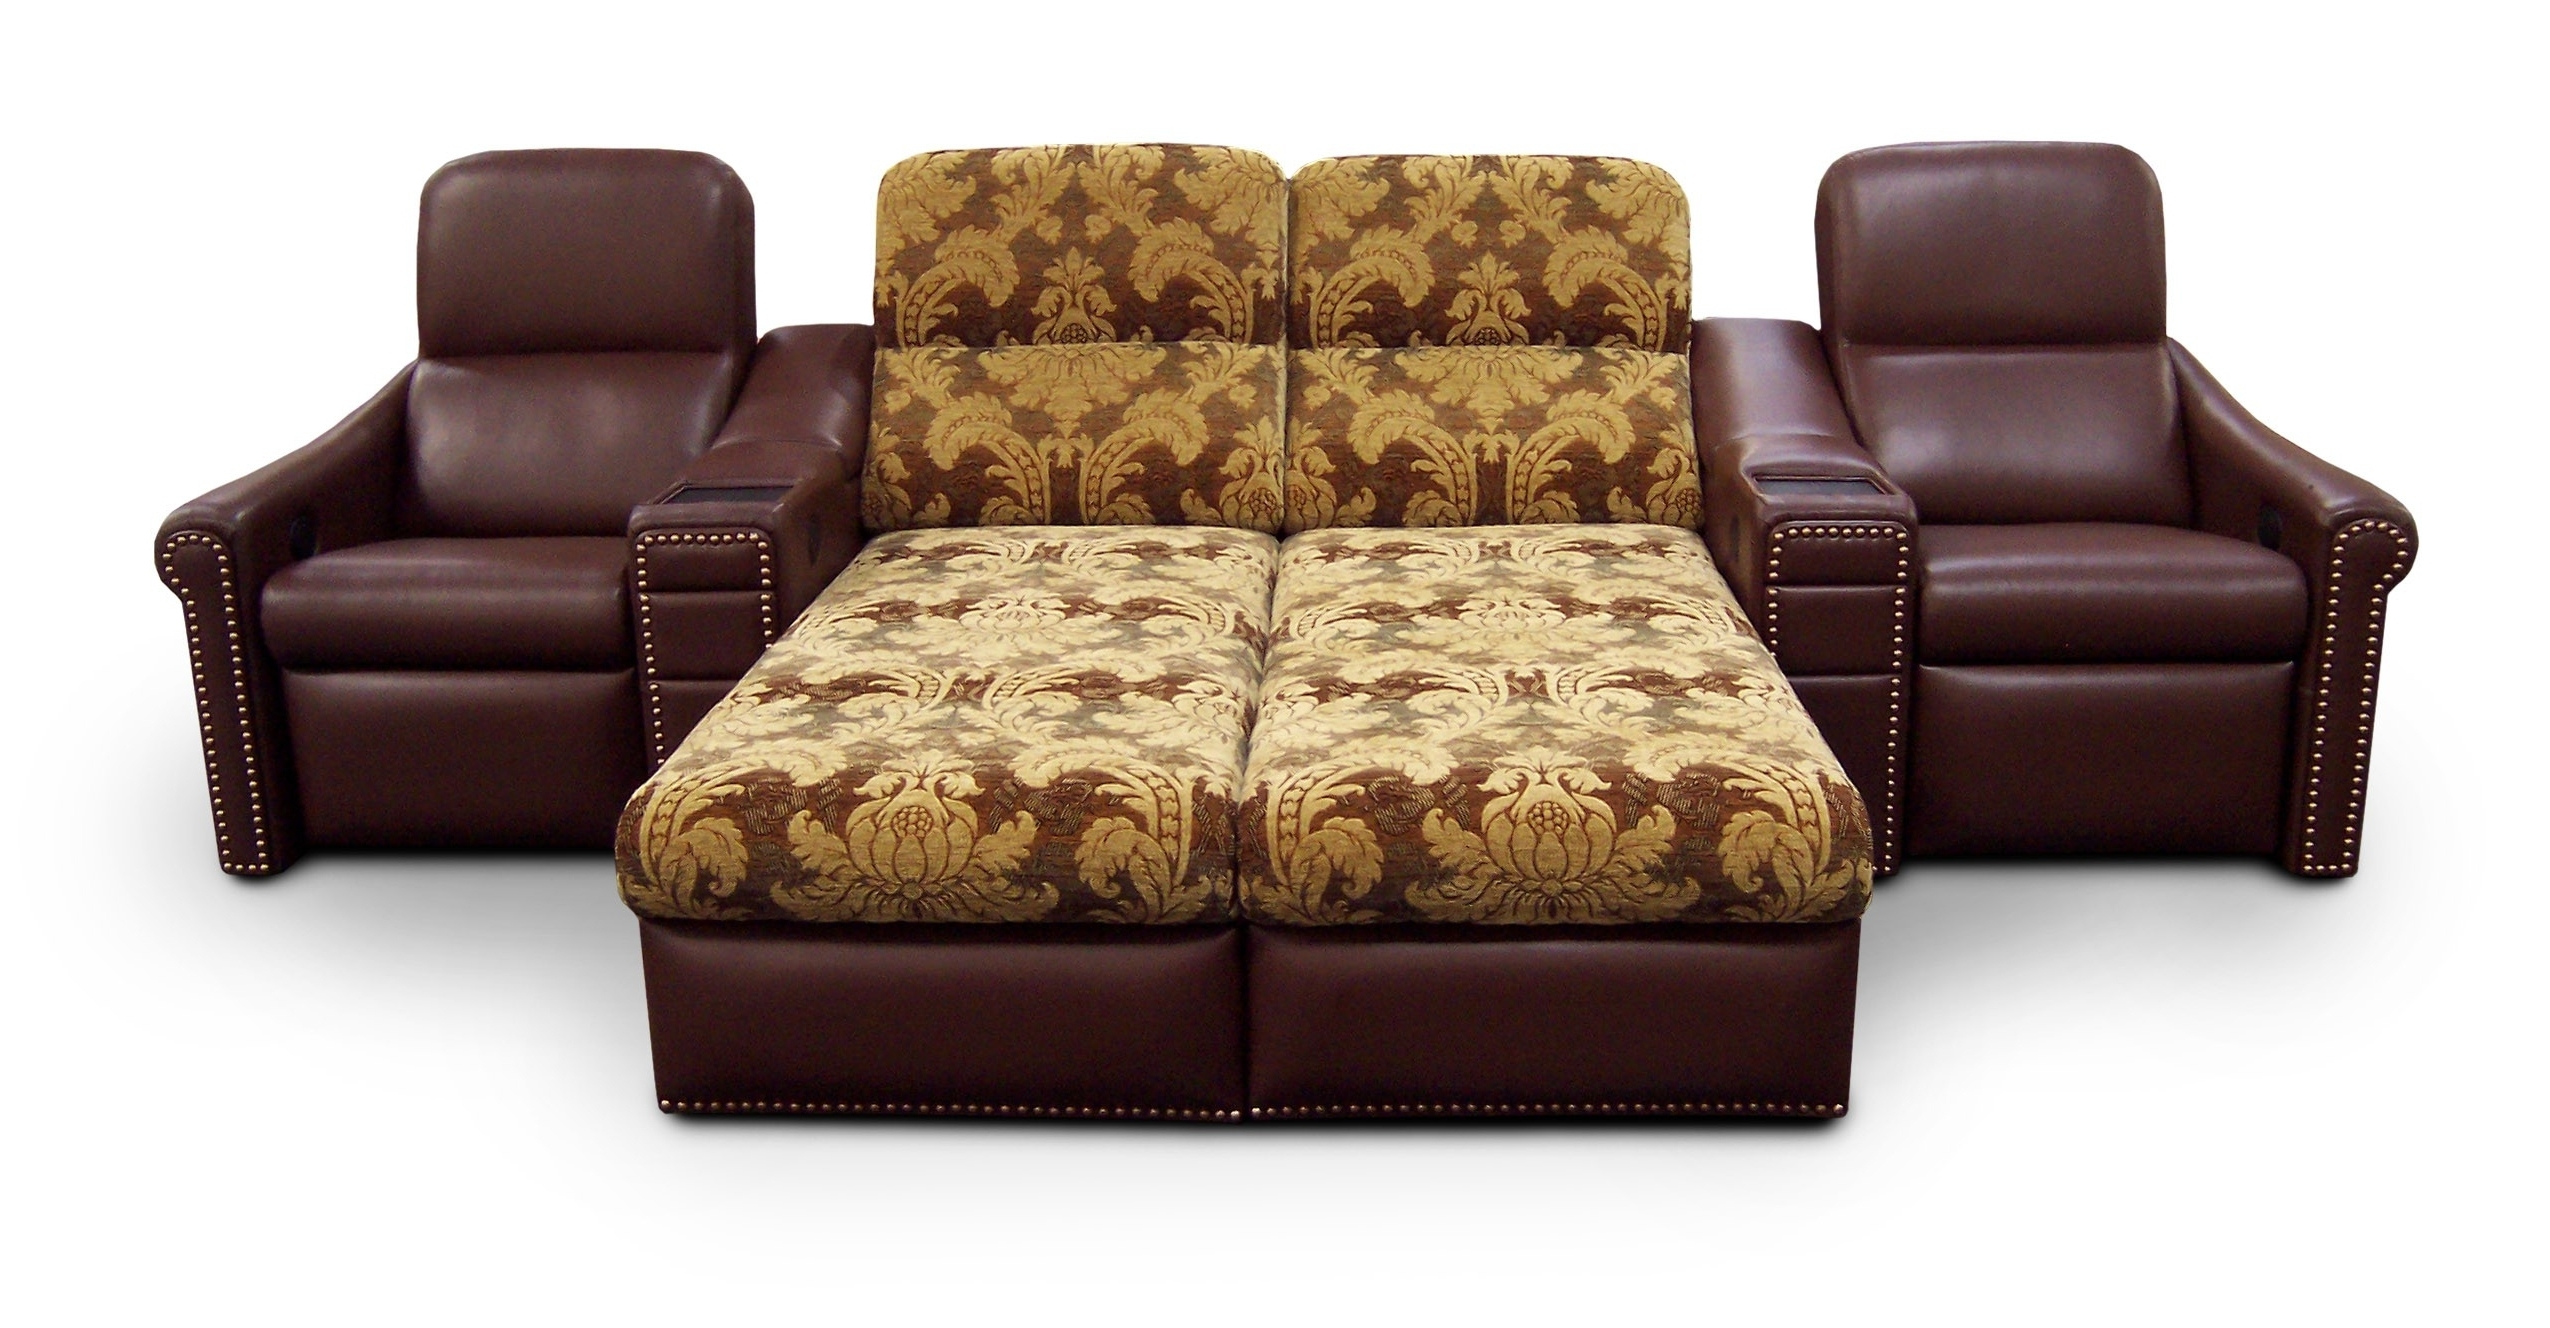 Most Recent Reclining Chaise Lounges For Fabulous Reclining Chaise Lounge With Reclining Sofa With Chaise (View 6 of 15)